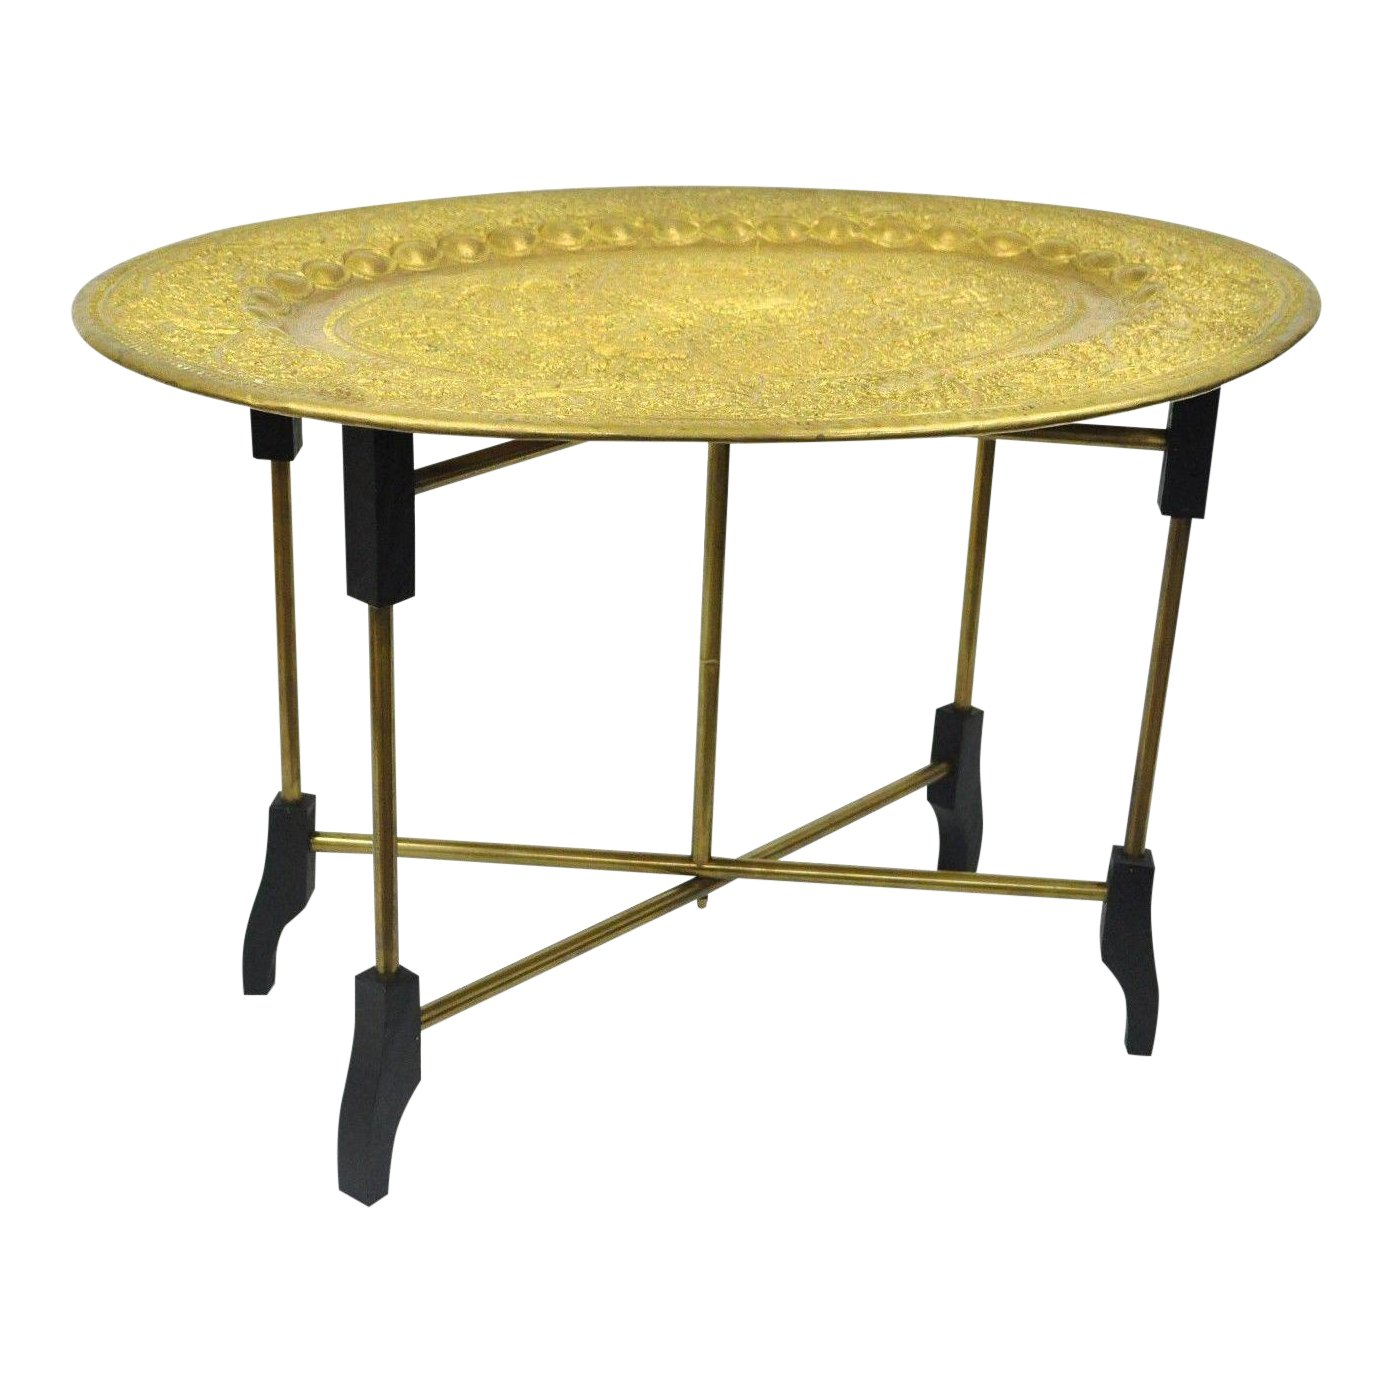 vintage mid century moroccan brass tray top folding small coffee accent table with chairish circular glass side handmade wood end tables mercury lamp turquoise bedside lamps white